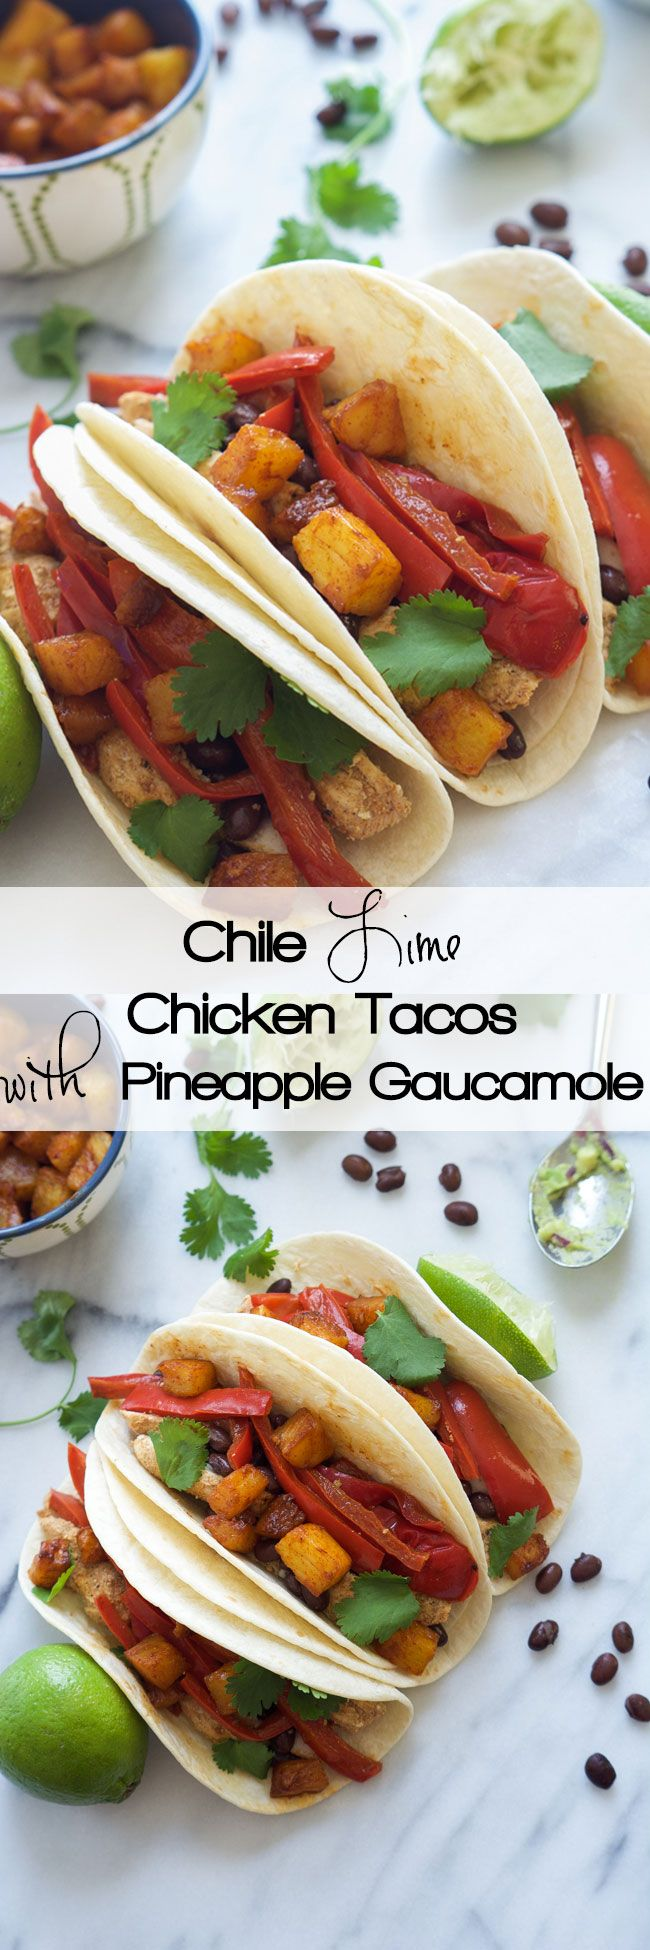 ... TACOS - My Favorite Food on Pinterest | Tacos, Lime chicken tacos and